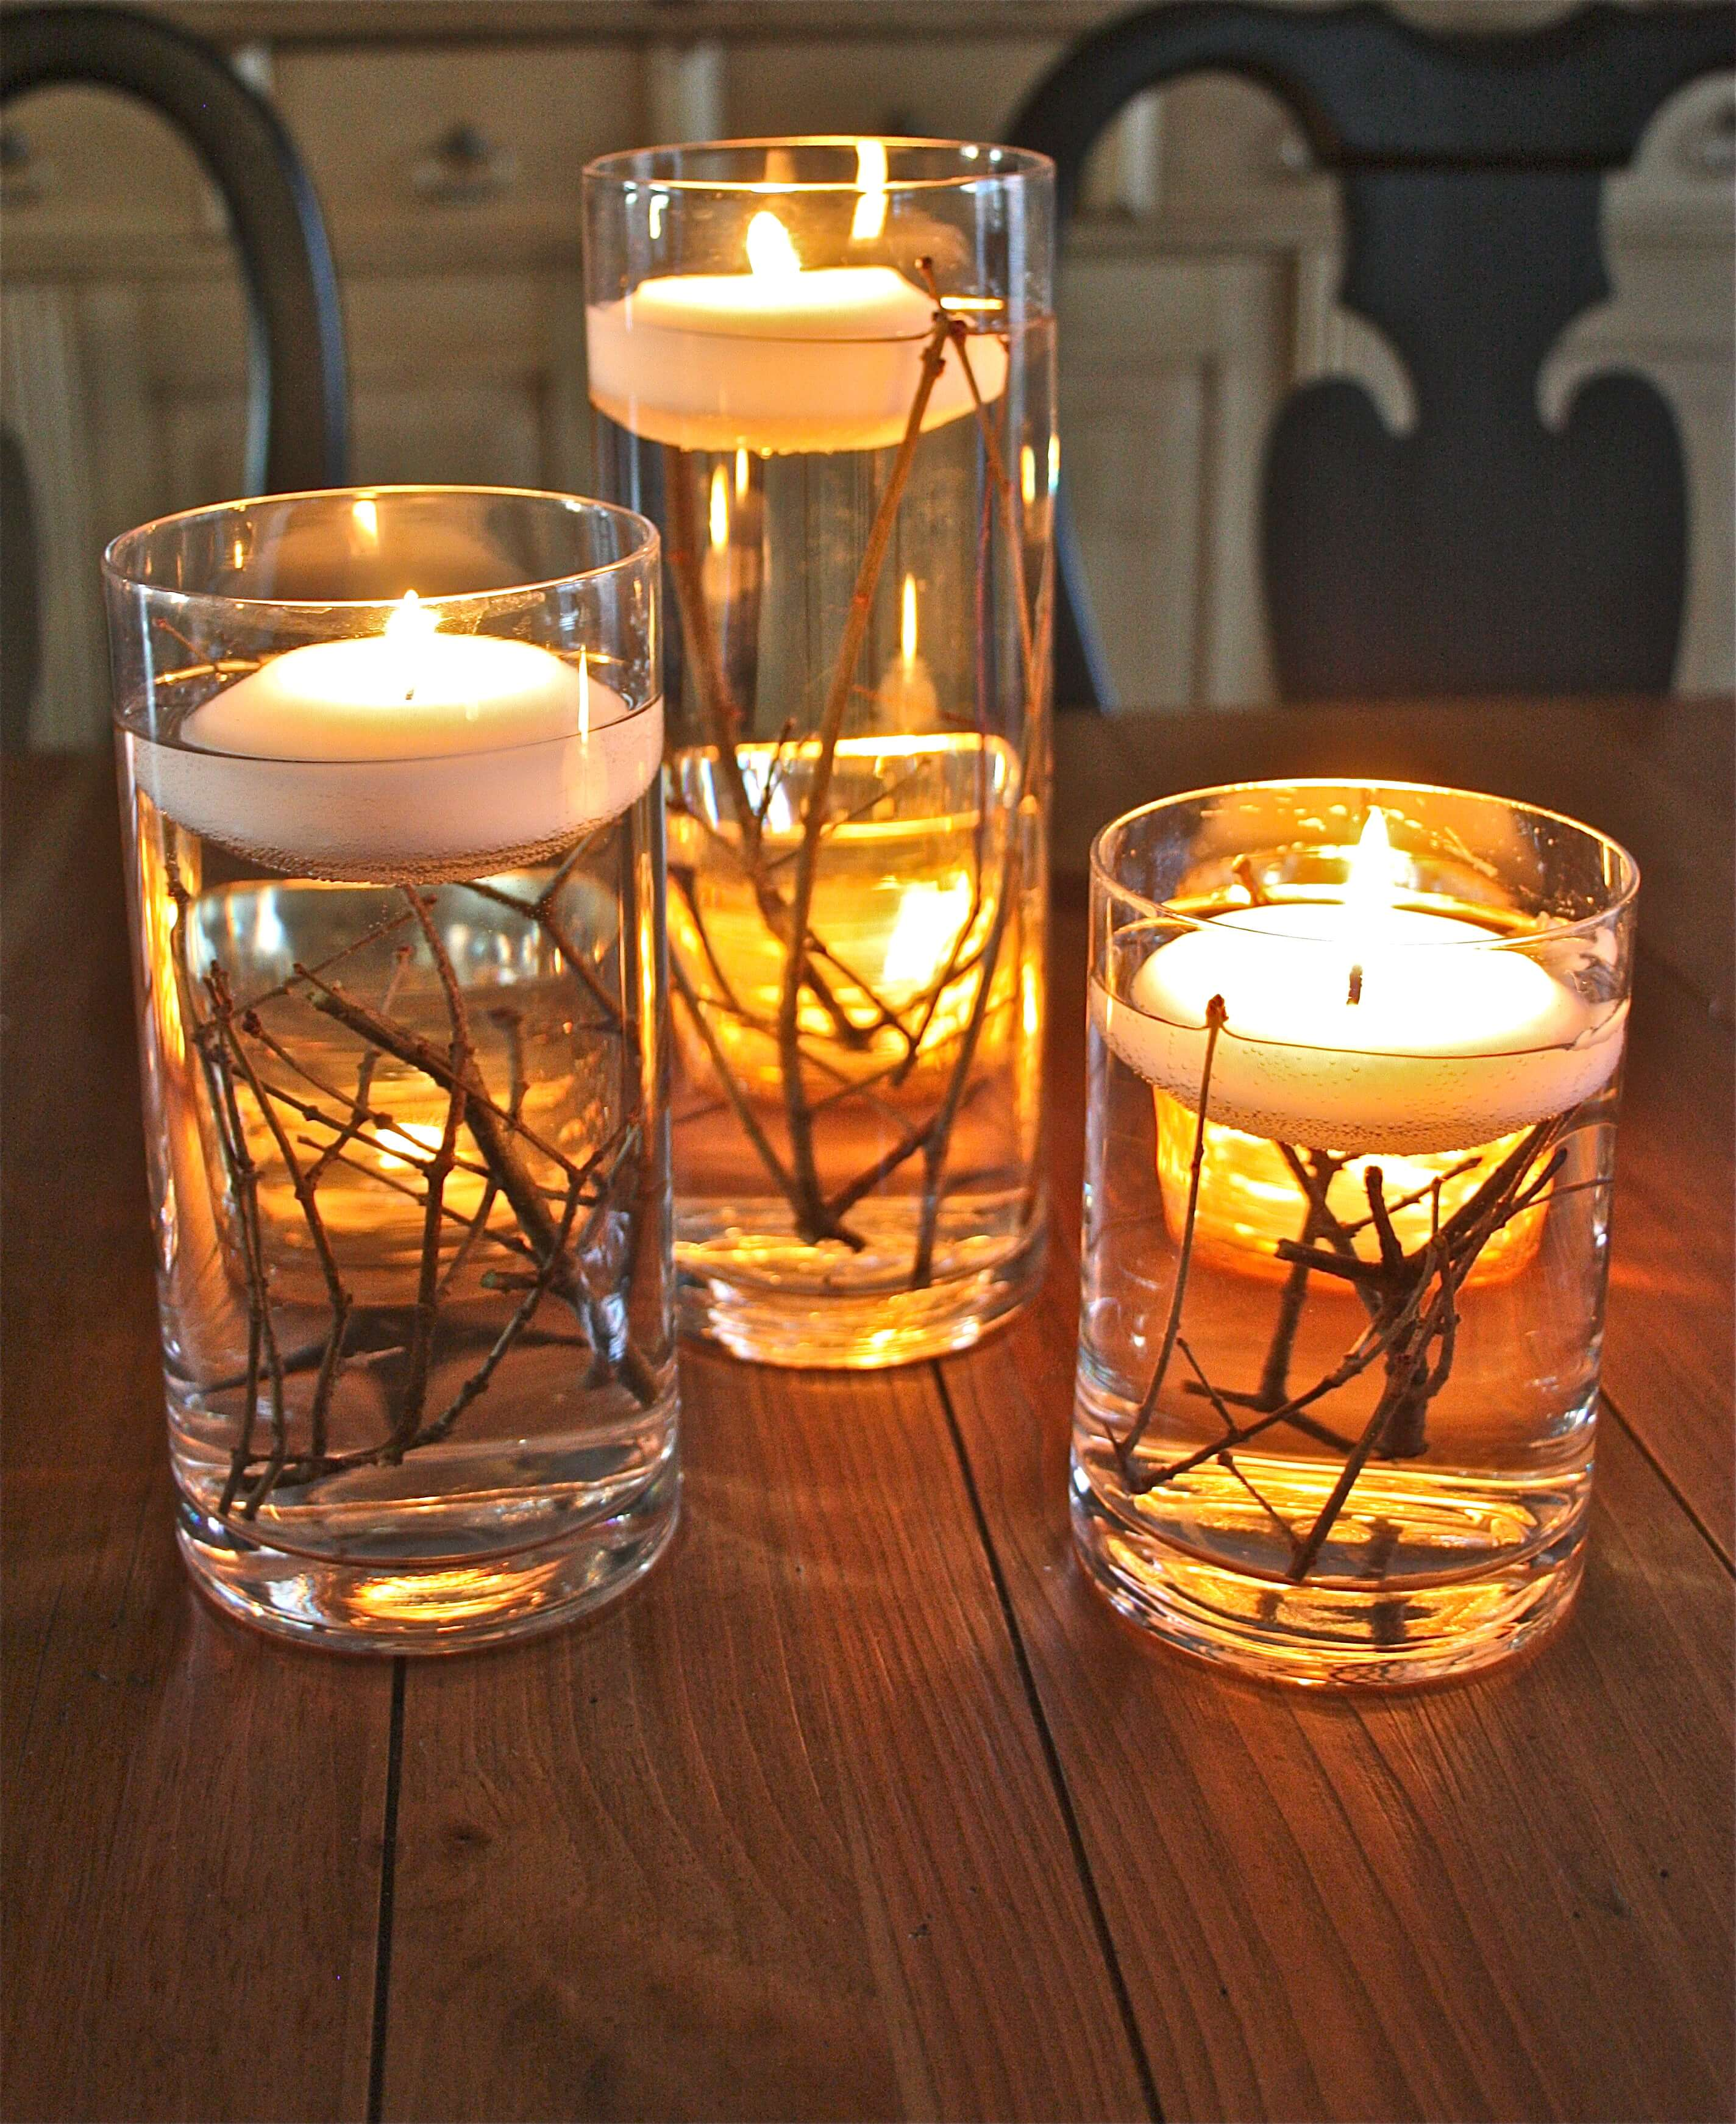 There's something so serene about floating candles